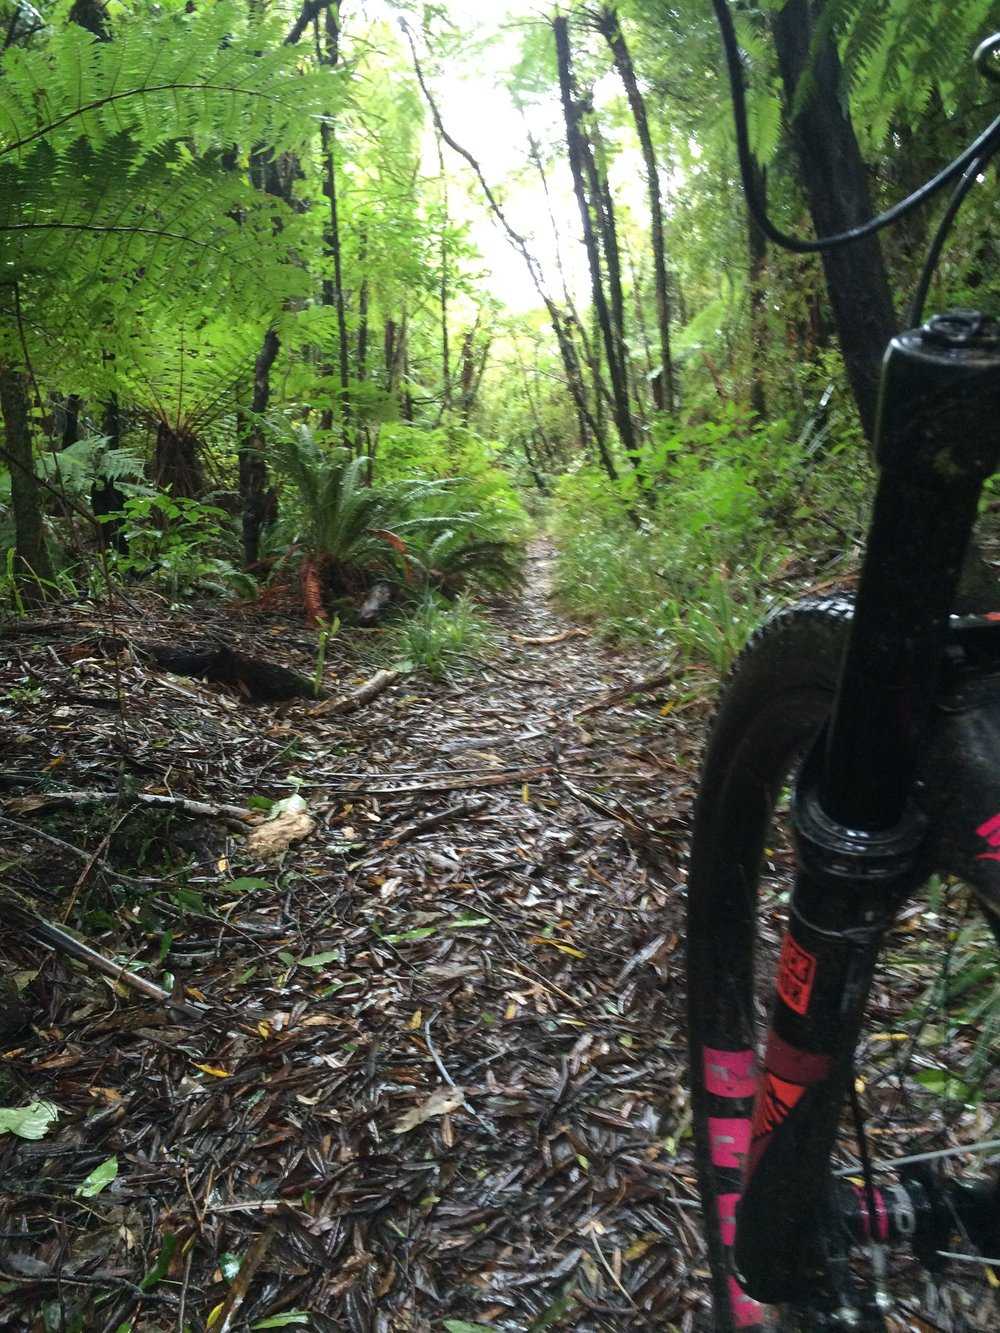 So much native singletrack. I wasn't missing berms and jumps one little bit.